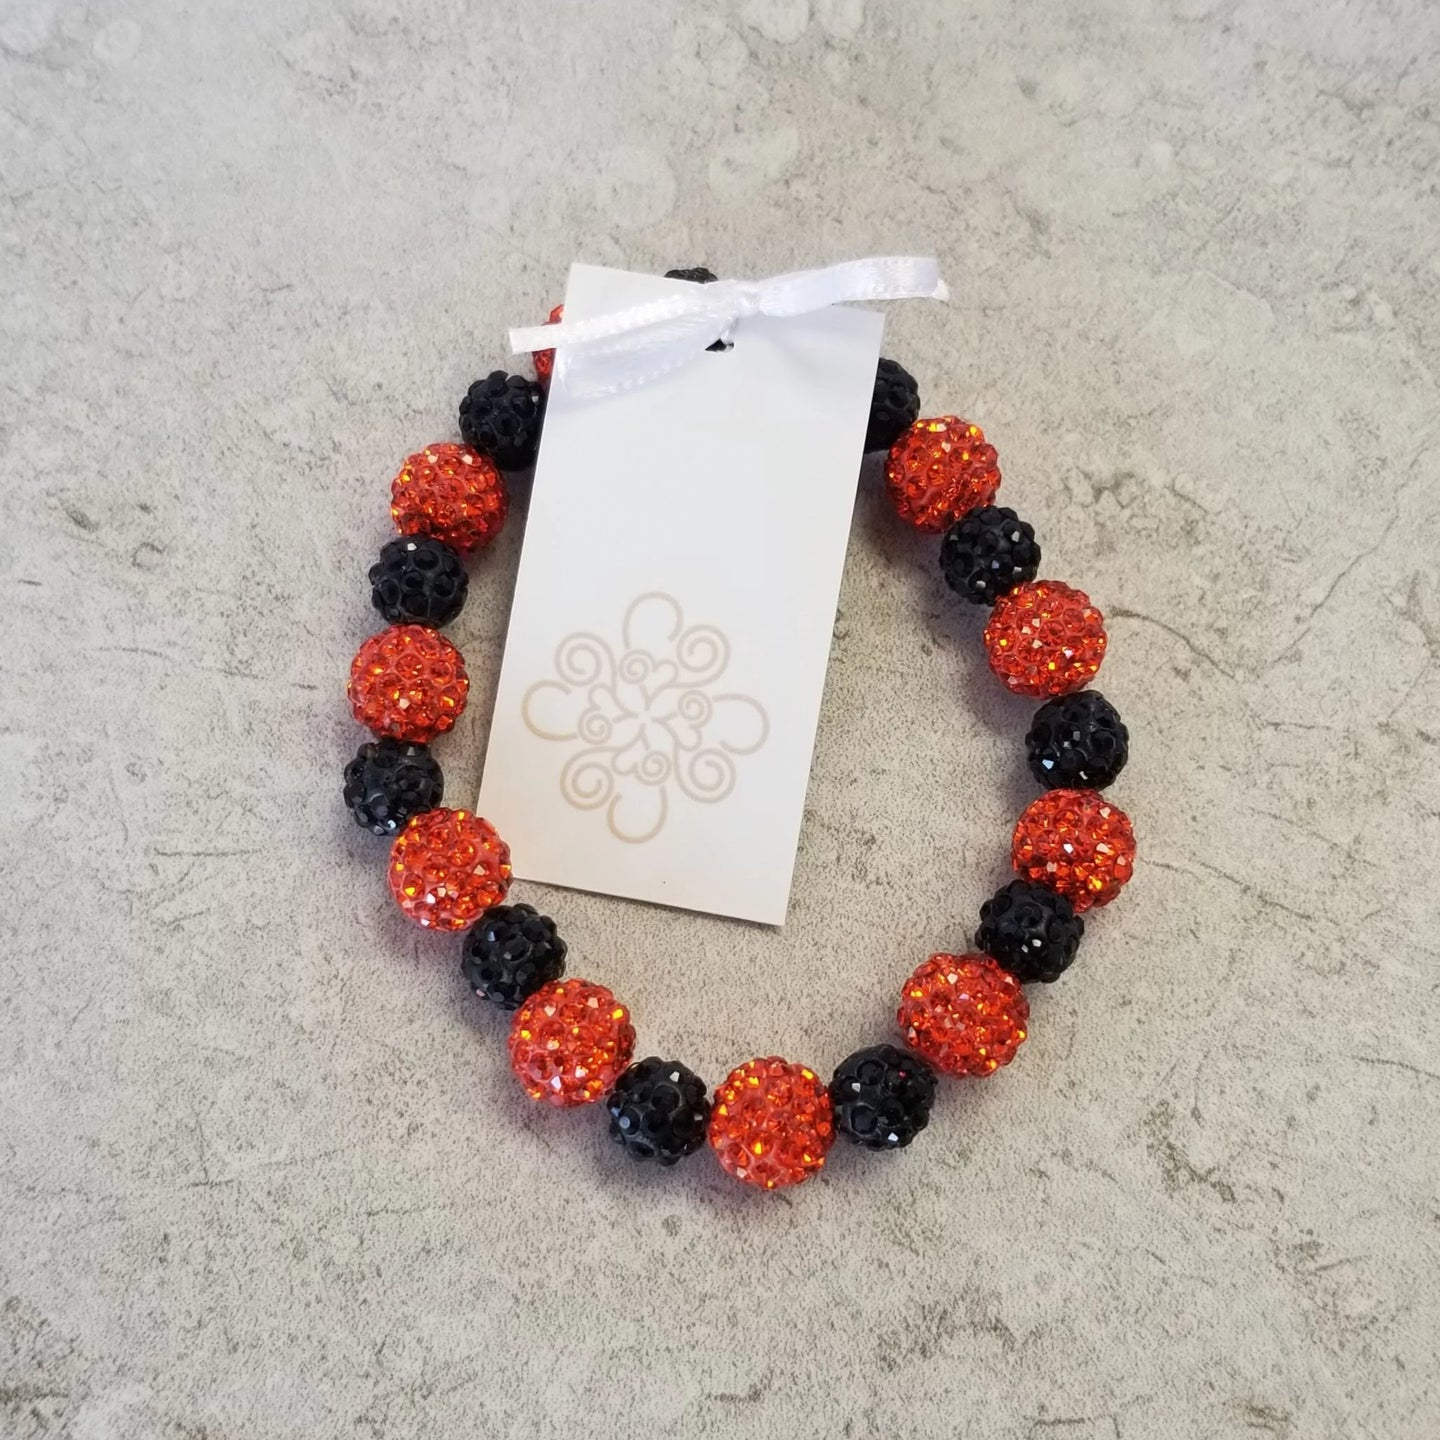 Orange & Black Sparkle Bracelet